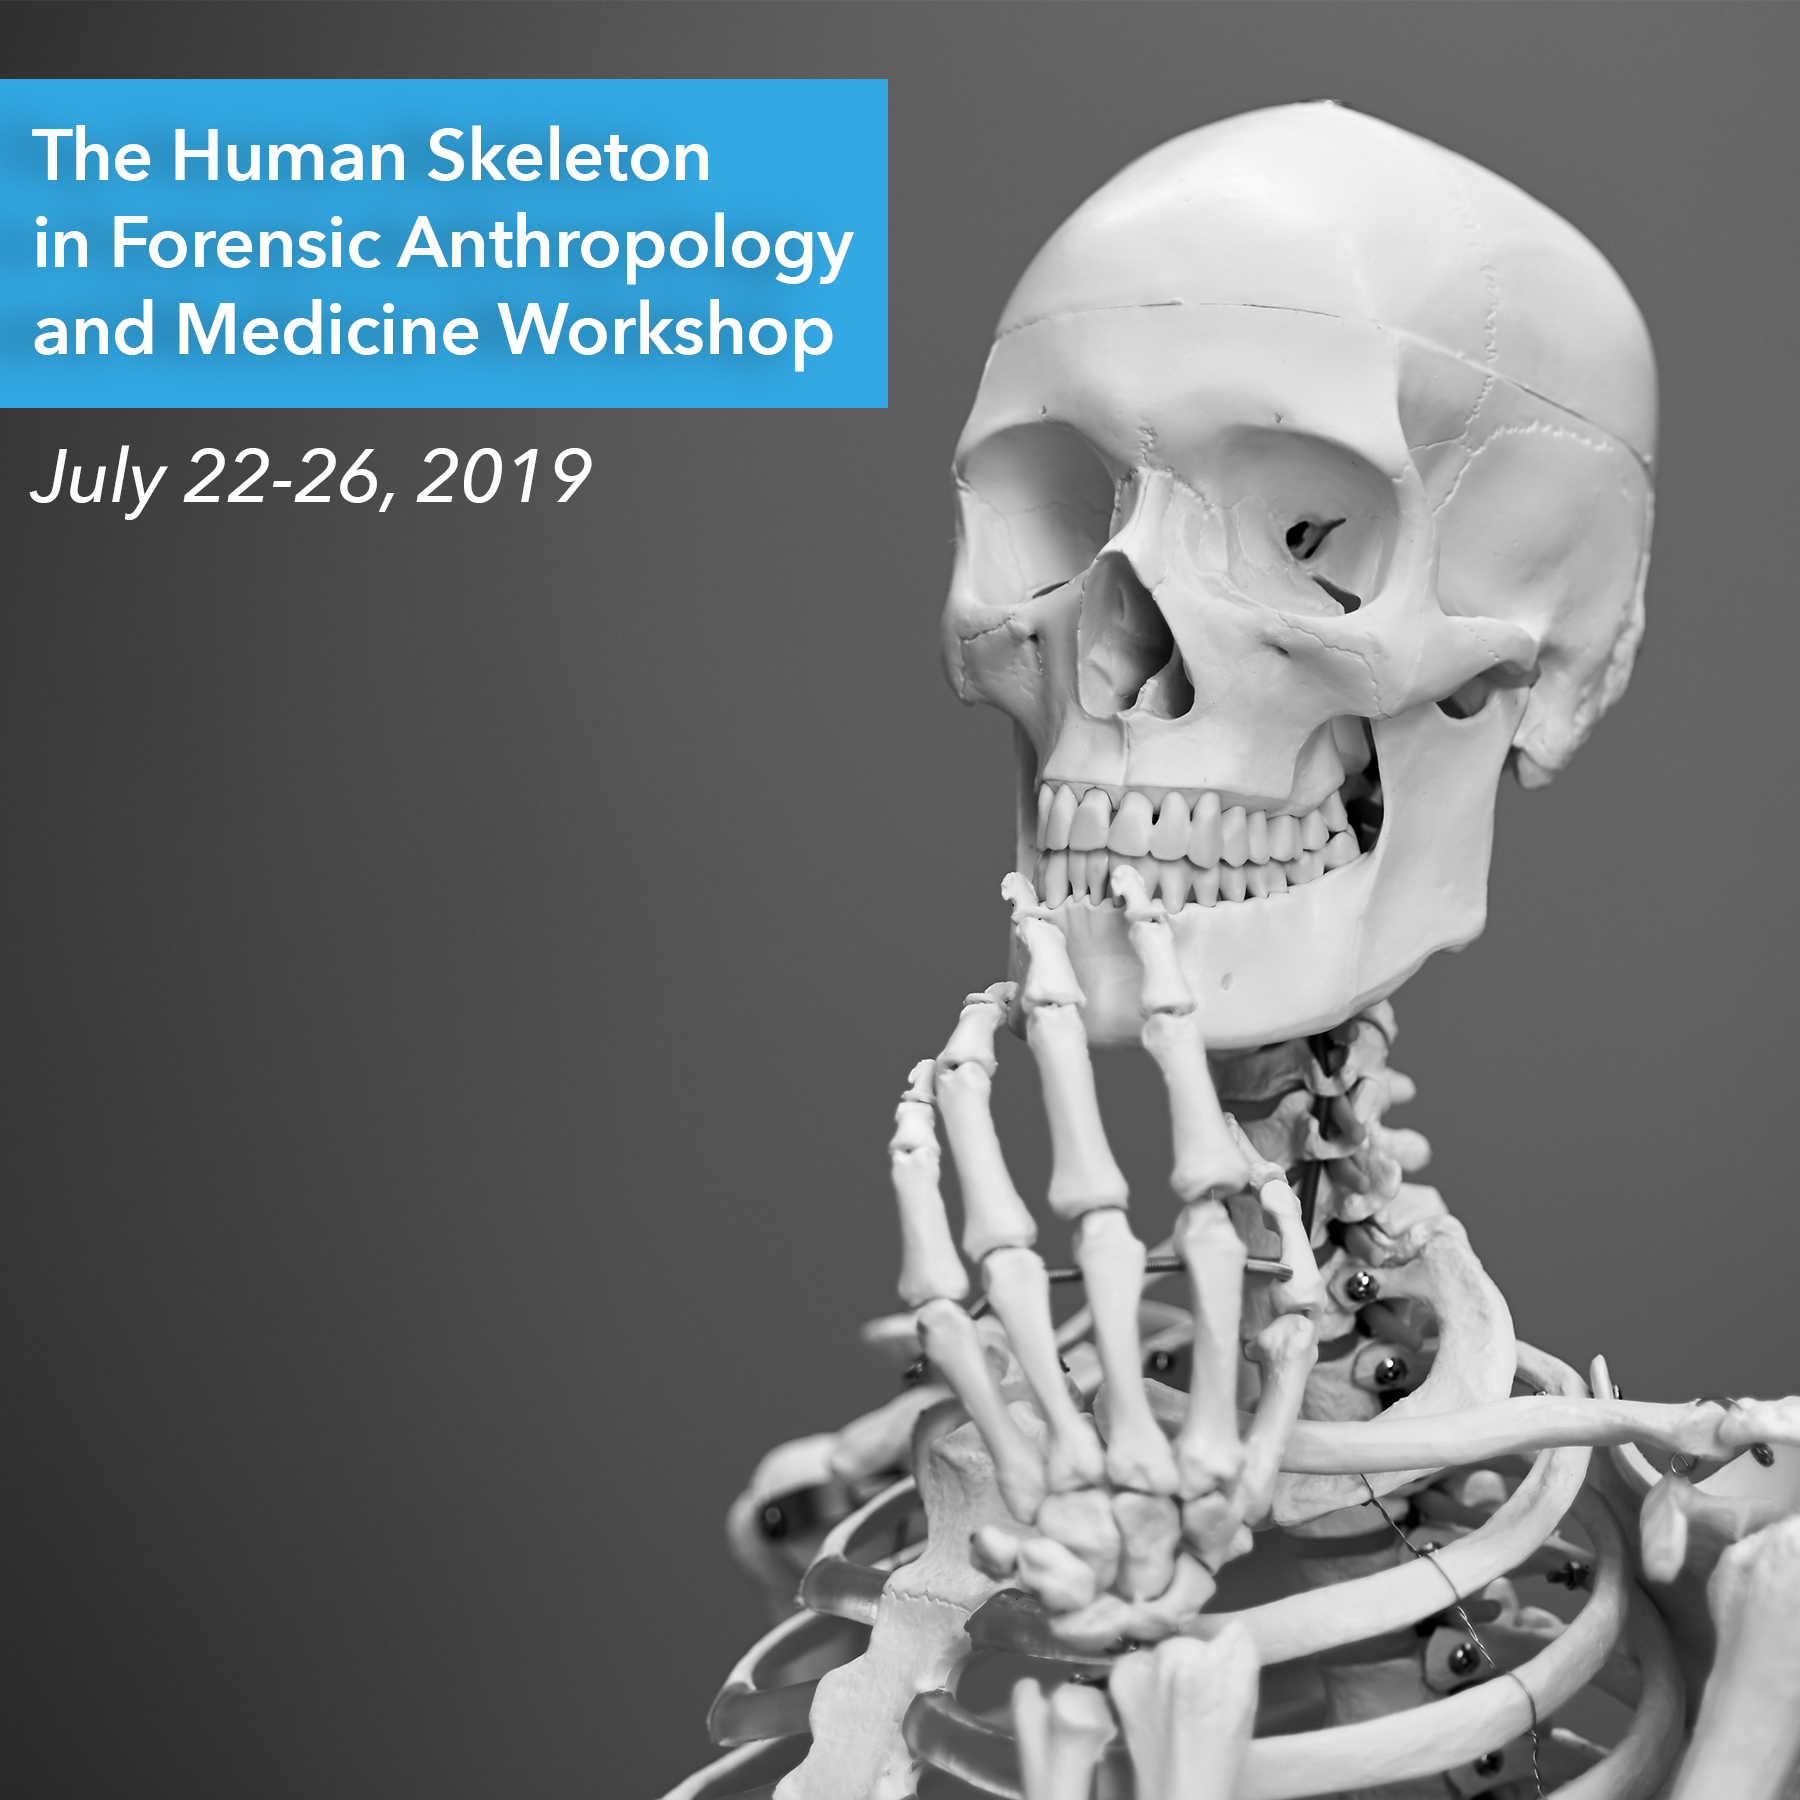 Photo of a Skeleton against a gray background with words the Human Skeleton in Forensic Anthropology and Medicine Workshop, July 22-26, 2019